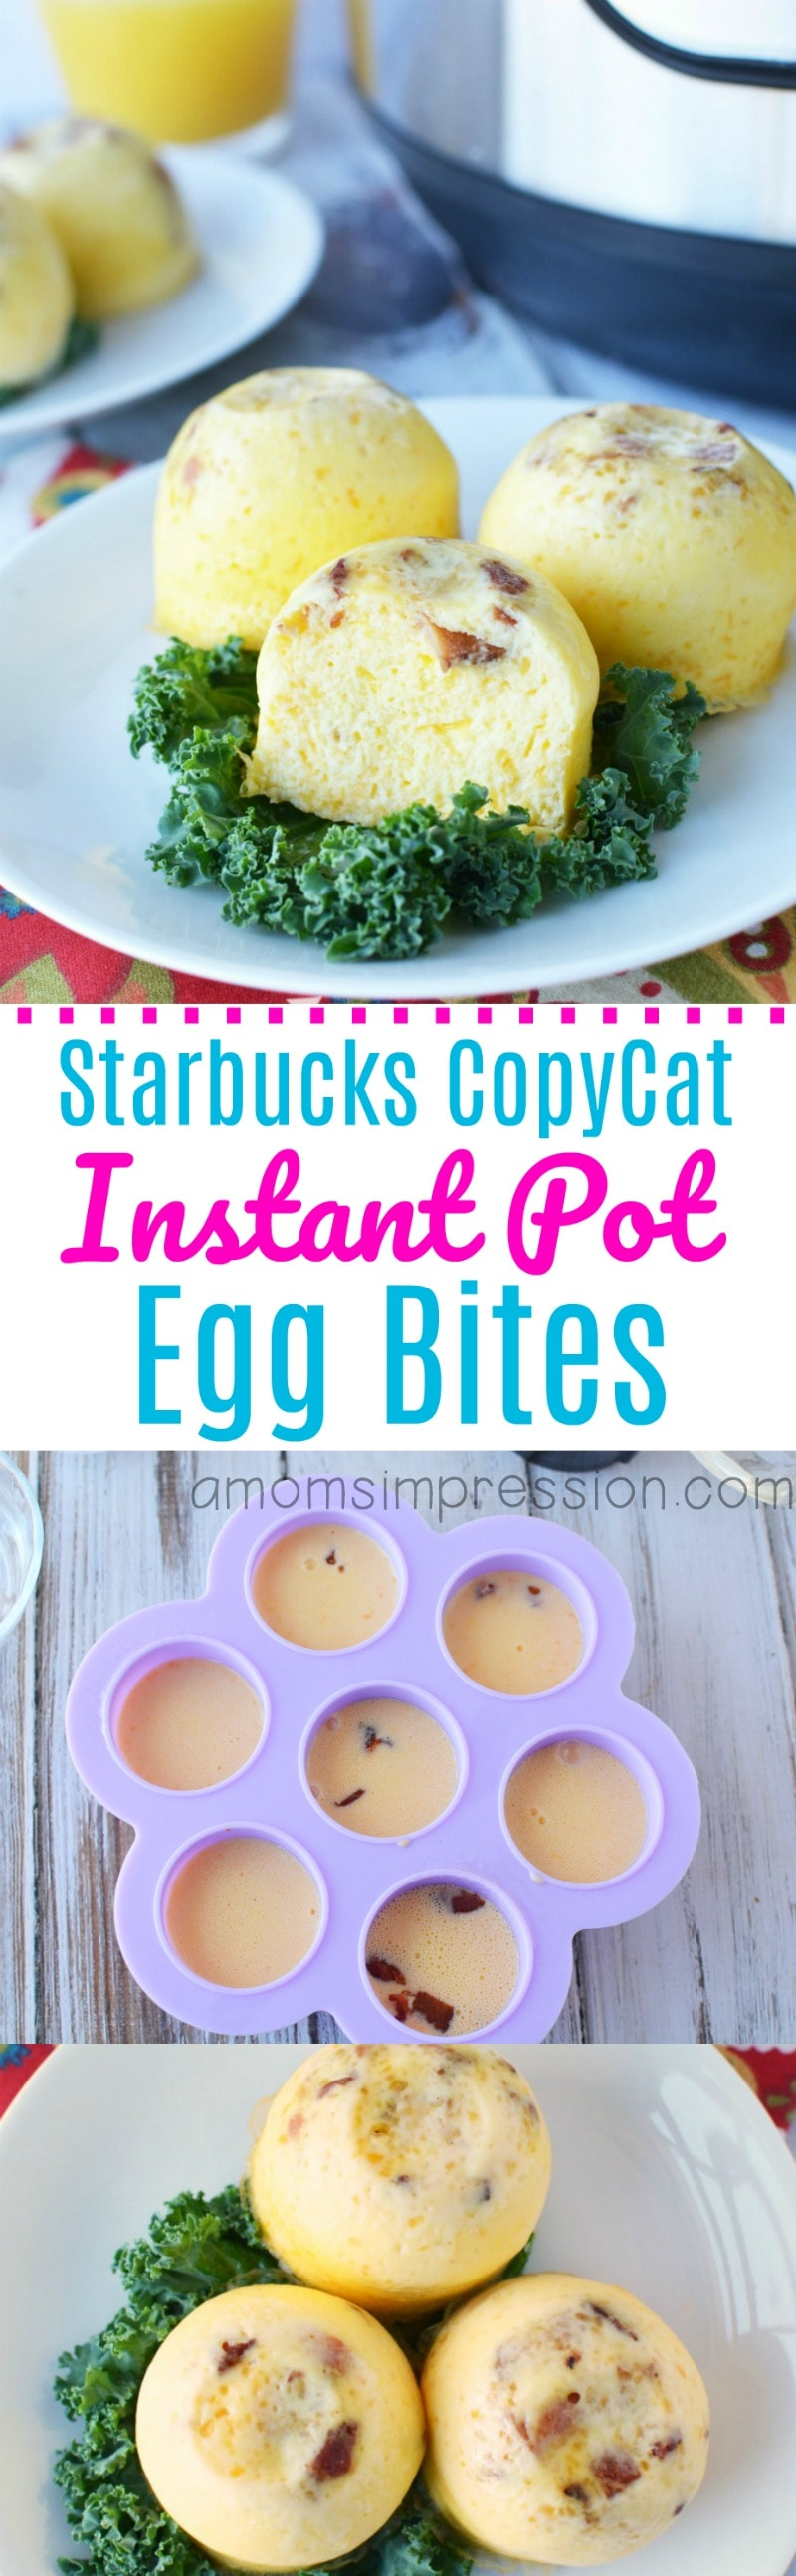 This Instant Pot copycat version of Starbuck's famous sous vide egg bites recipe are amazing! Make a healthy and tasty breakfast in your pressure cooker in minutes using a silicone baby food mold or small Mason jars!